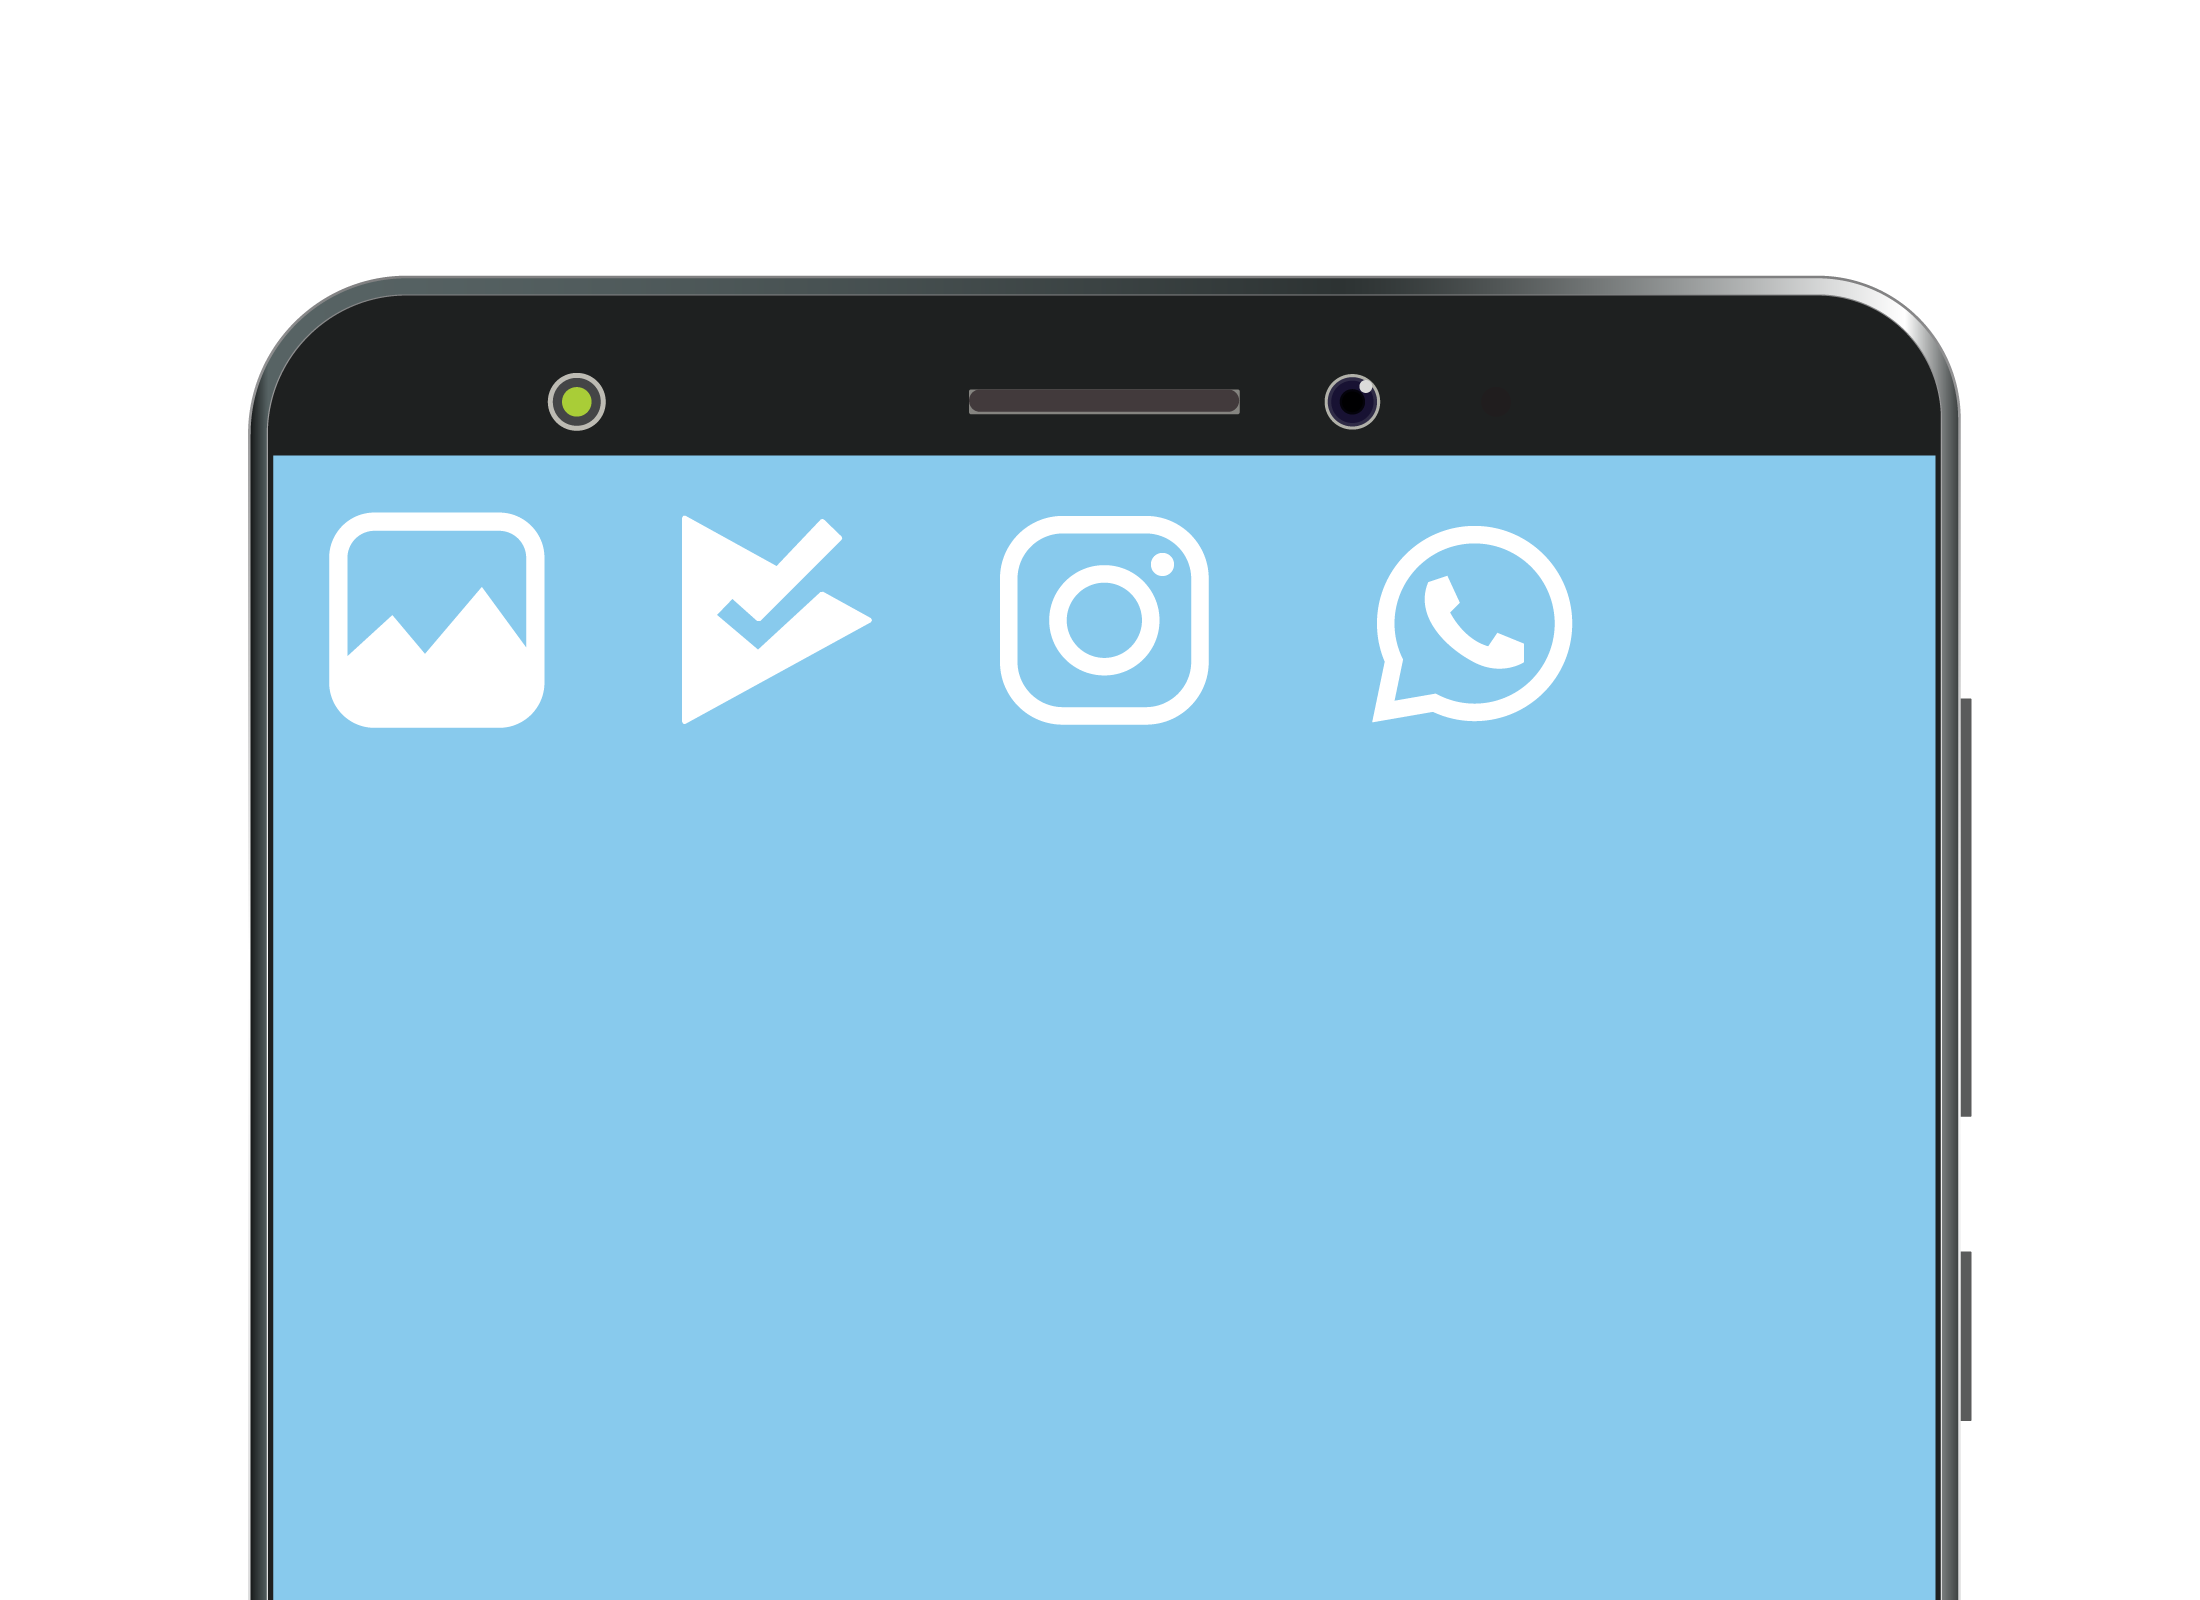 Some typical icons on a smartphone screen